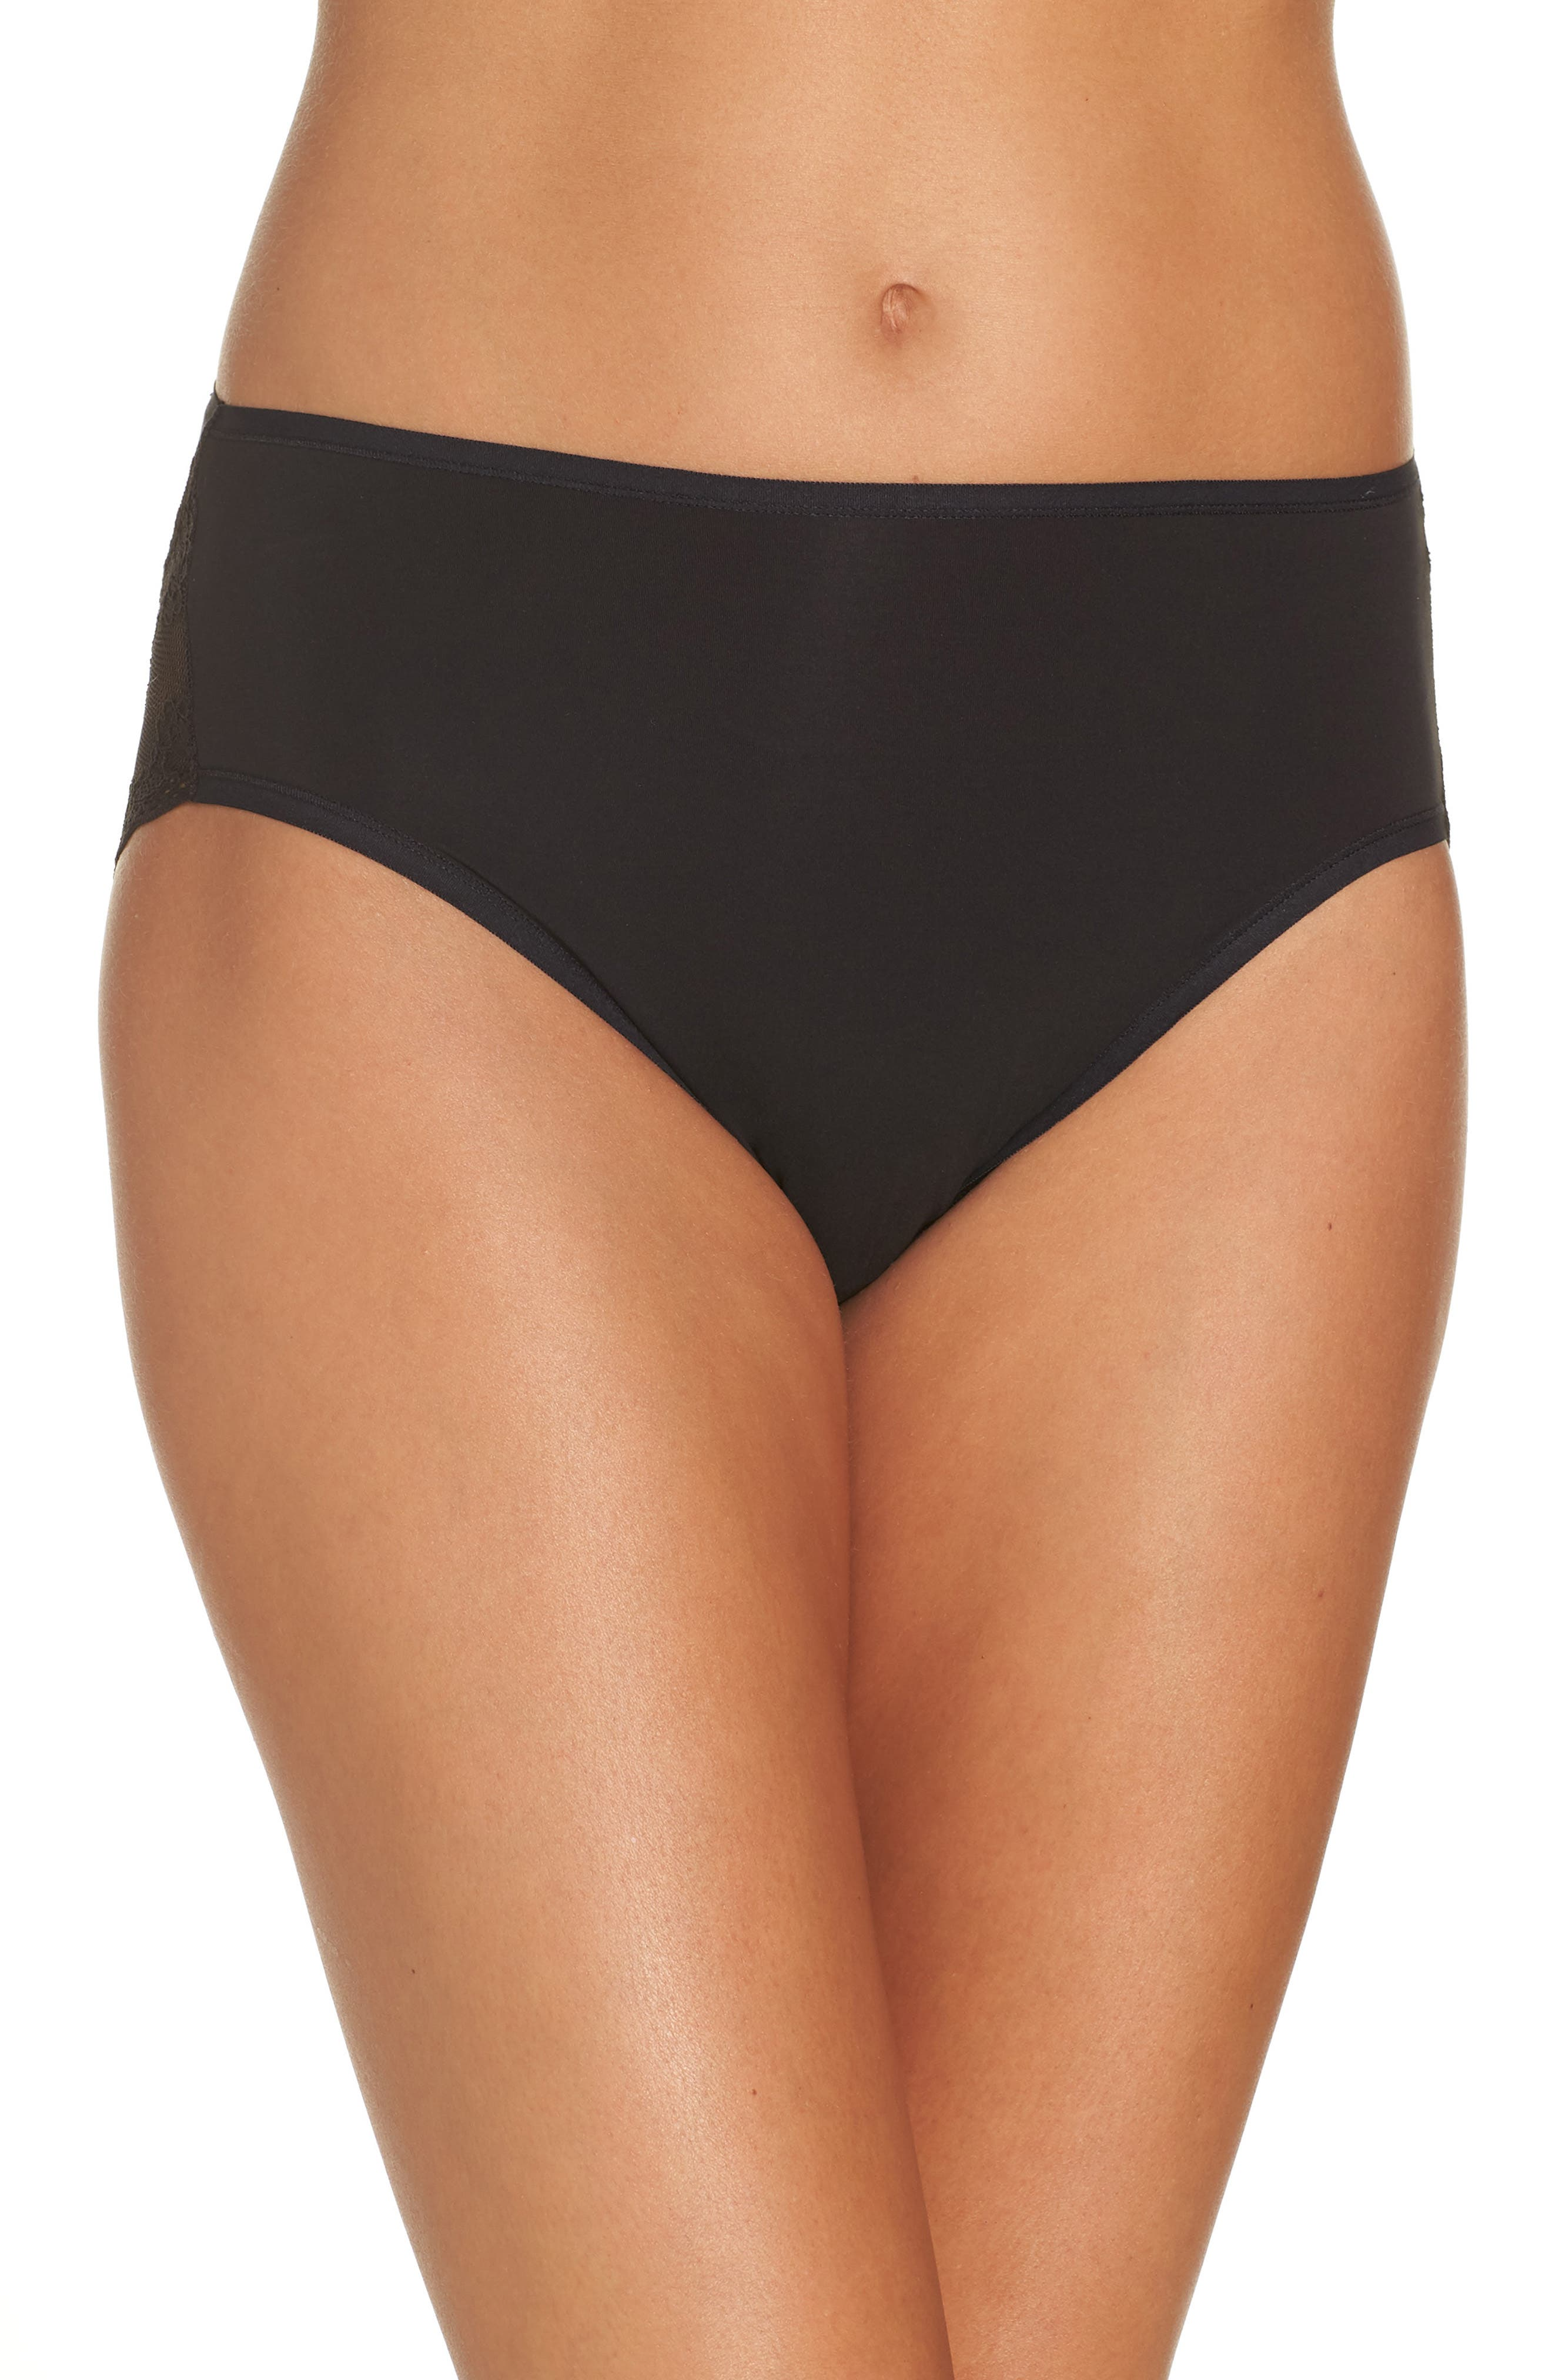 Bliss Perfection French Cut Briefs,                             Main thumbnail 1, color,                             BLACK